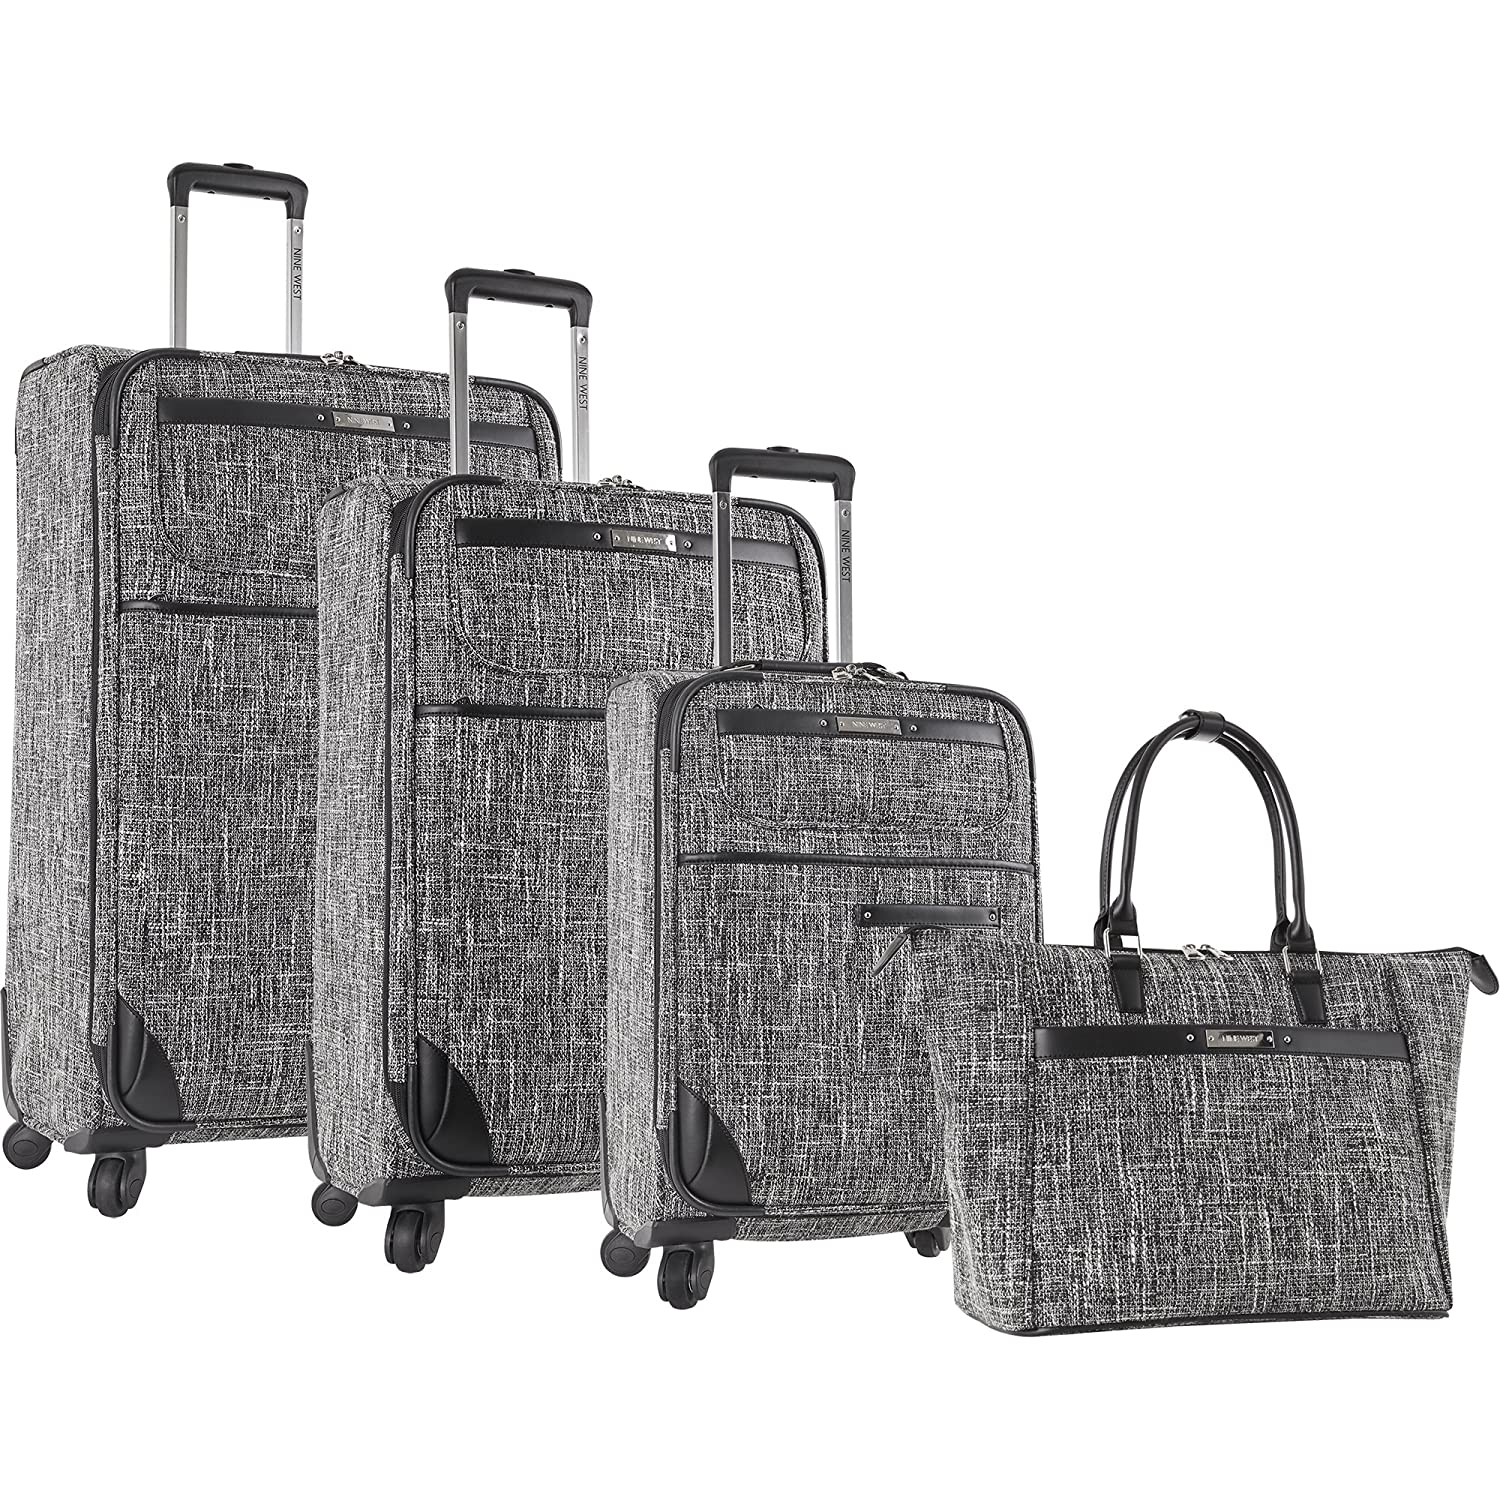 Nine West Nine West Voyajour 4 Piece Luggage Set - Juego de Maletas Adulto Unisex, Negro/Blanco (Negro) - 2543P02: Amazon.es: Equipaje